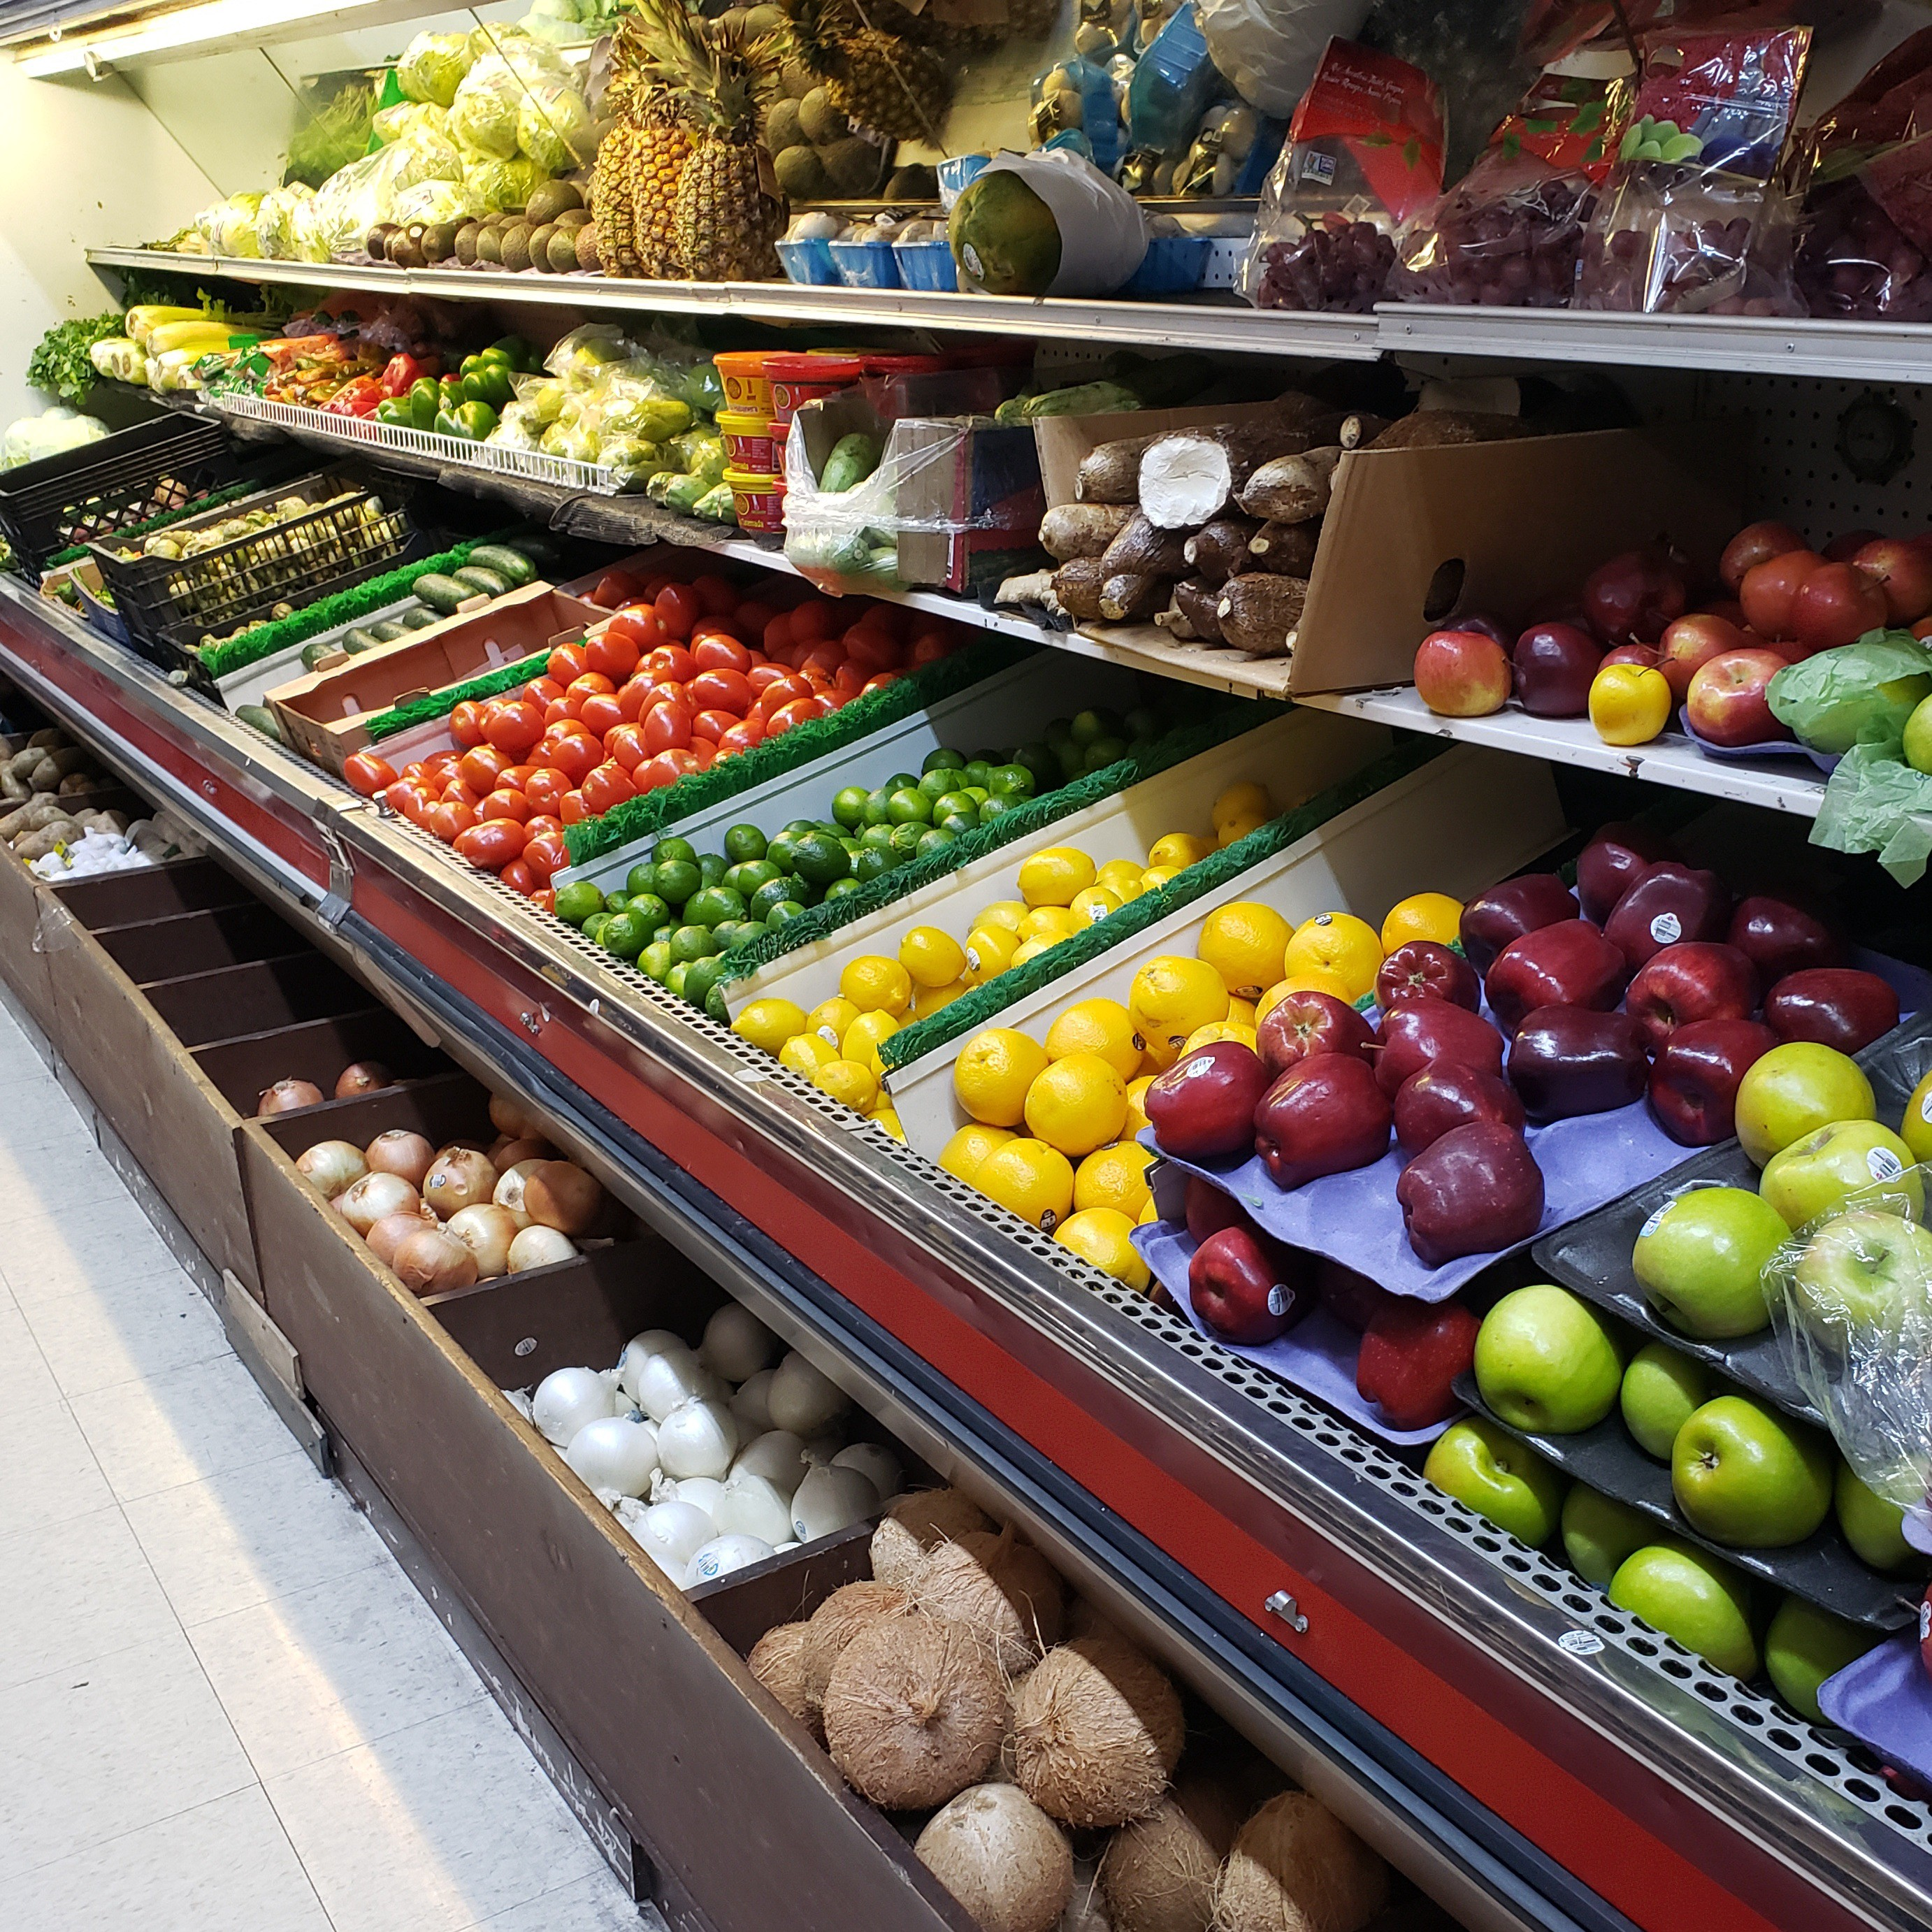 Fruits and vegetables at E. 14th Produce